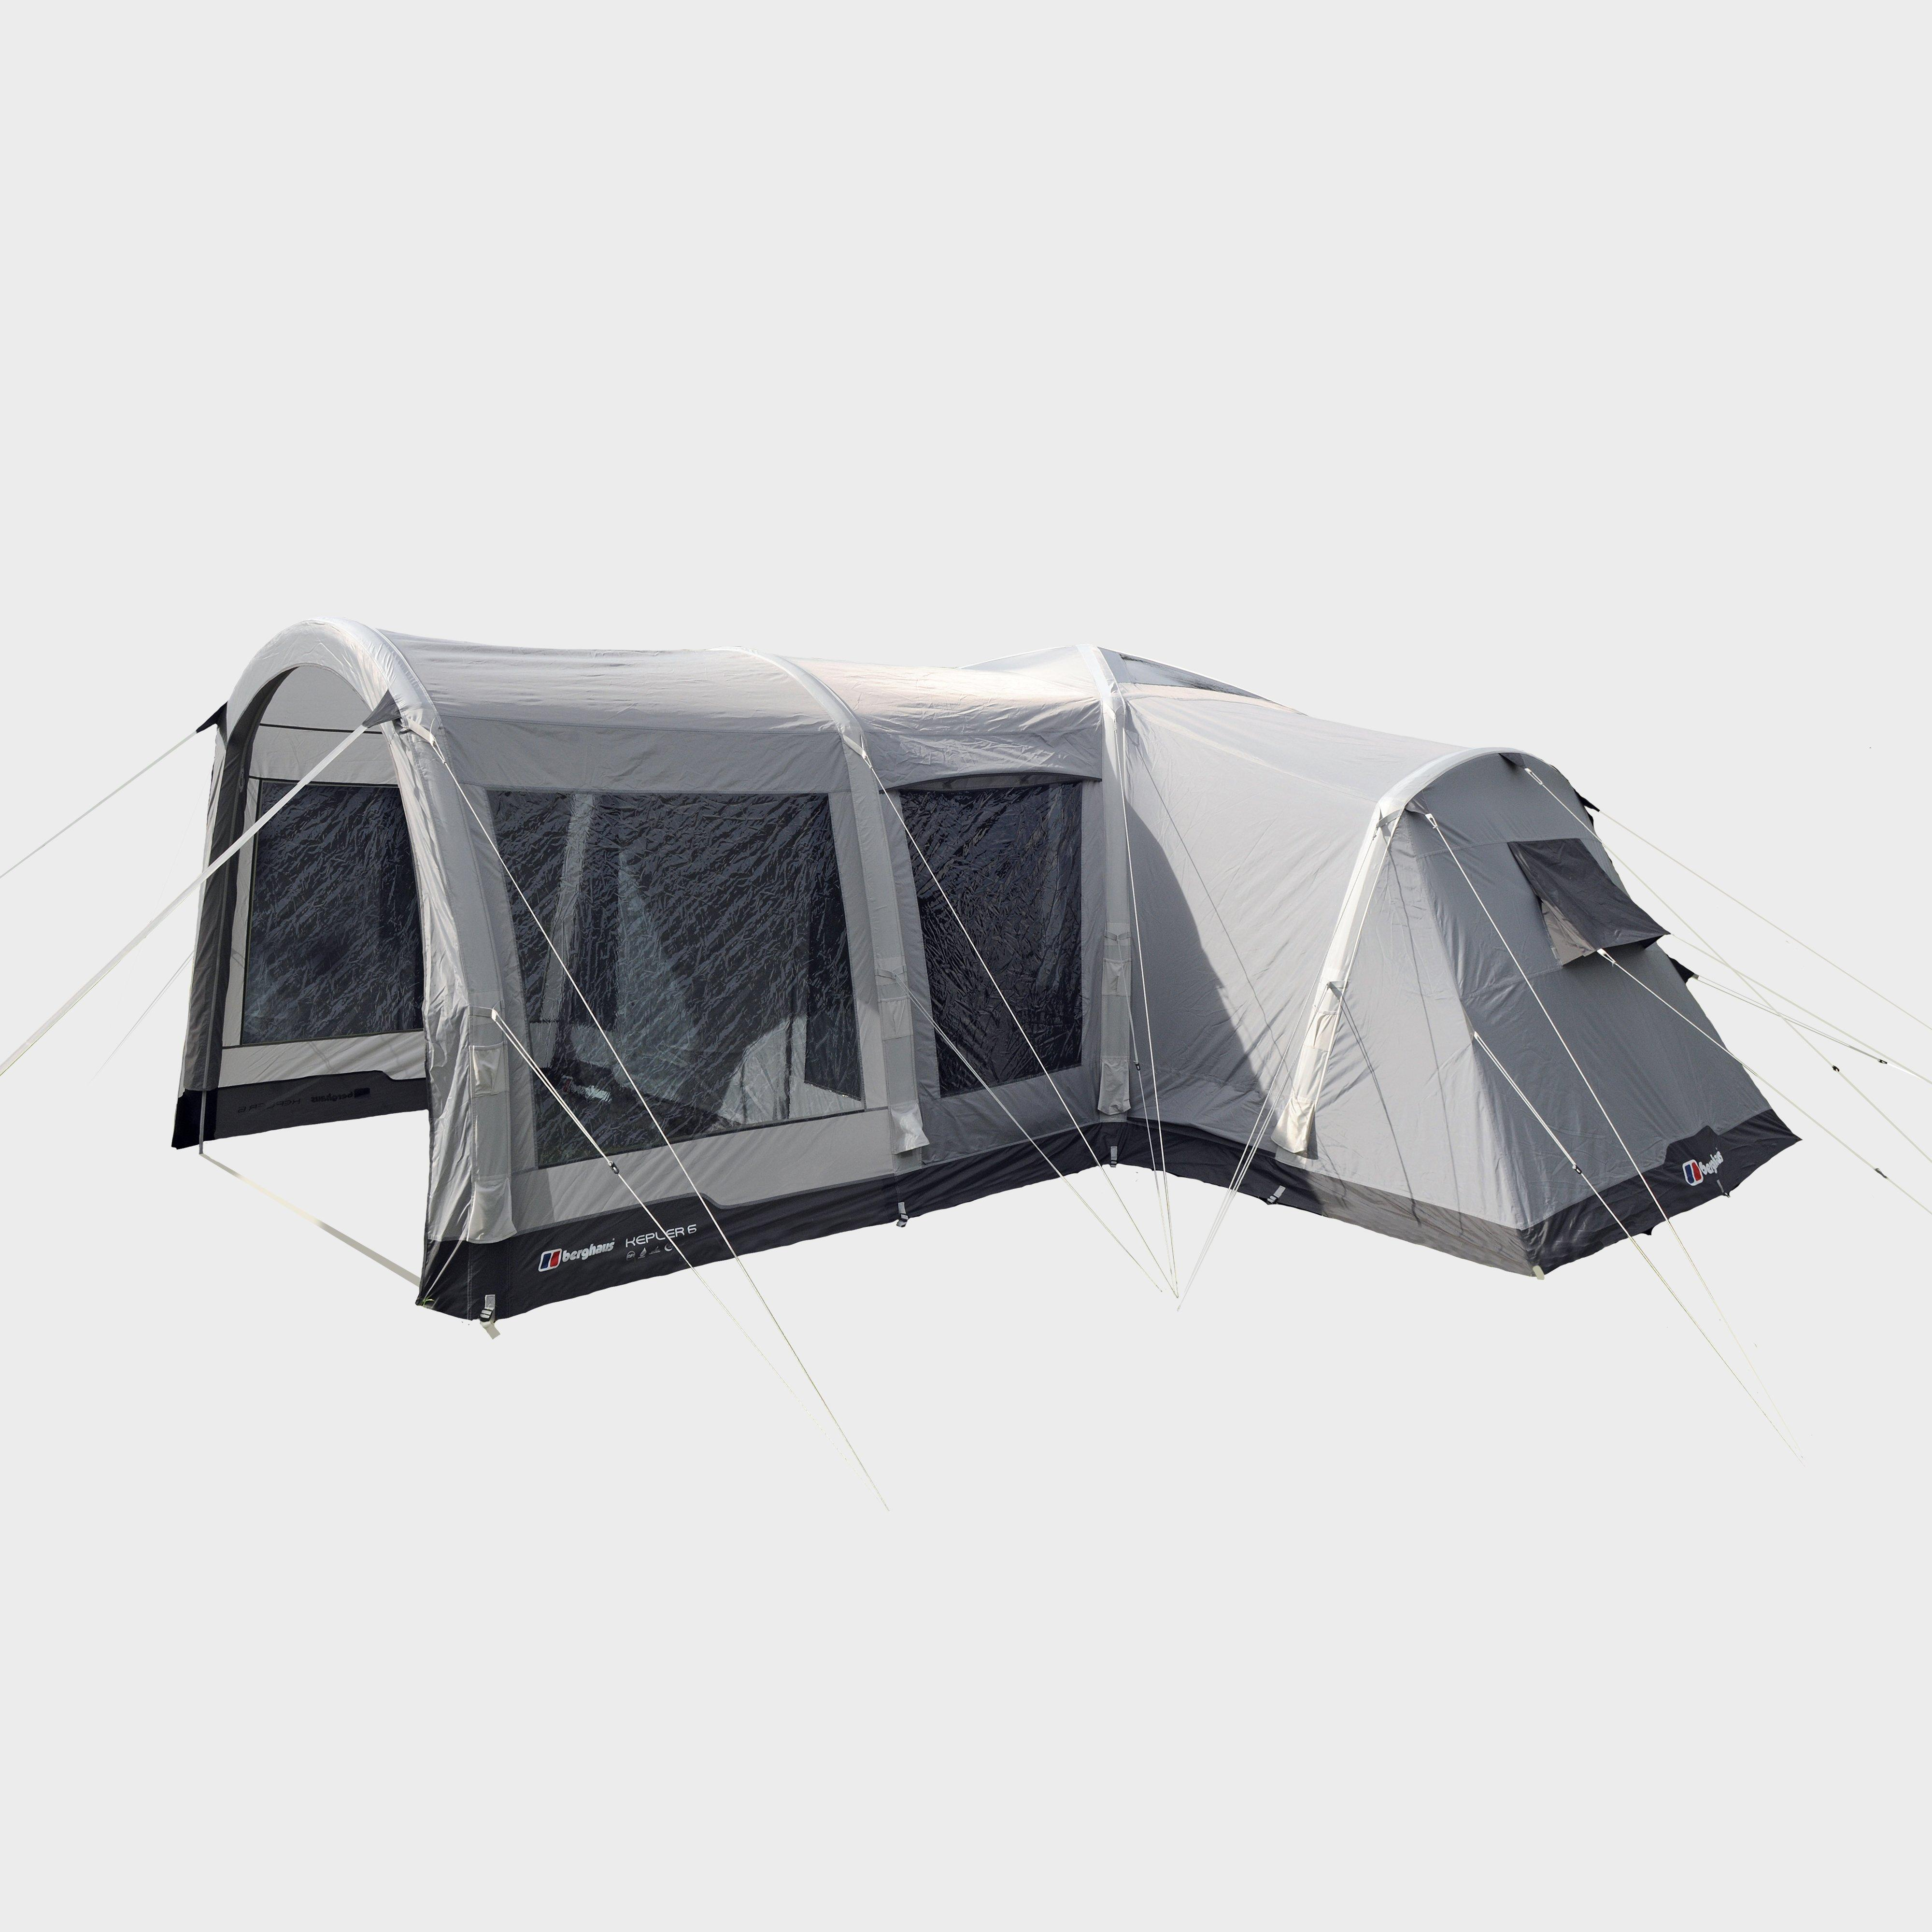 Berghaus Berghaus Kepler 6 Nightfall Air Tent, Grey